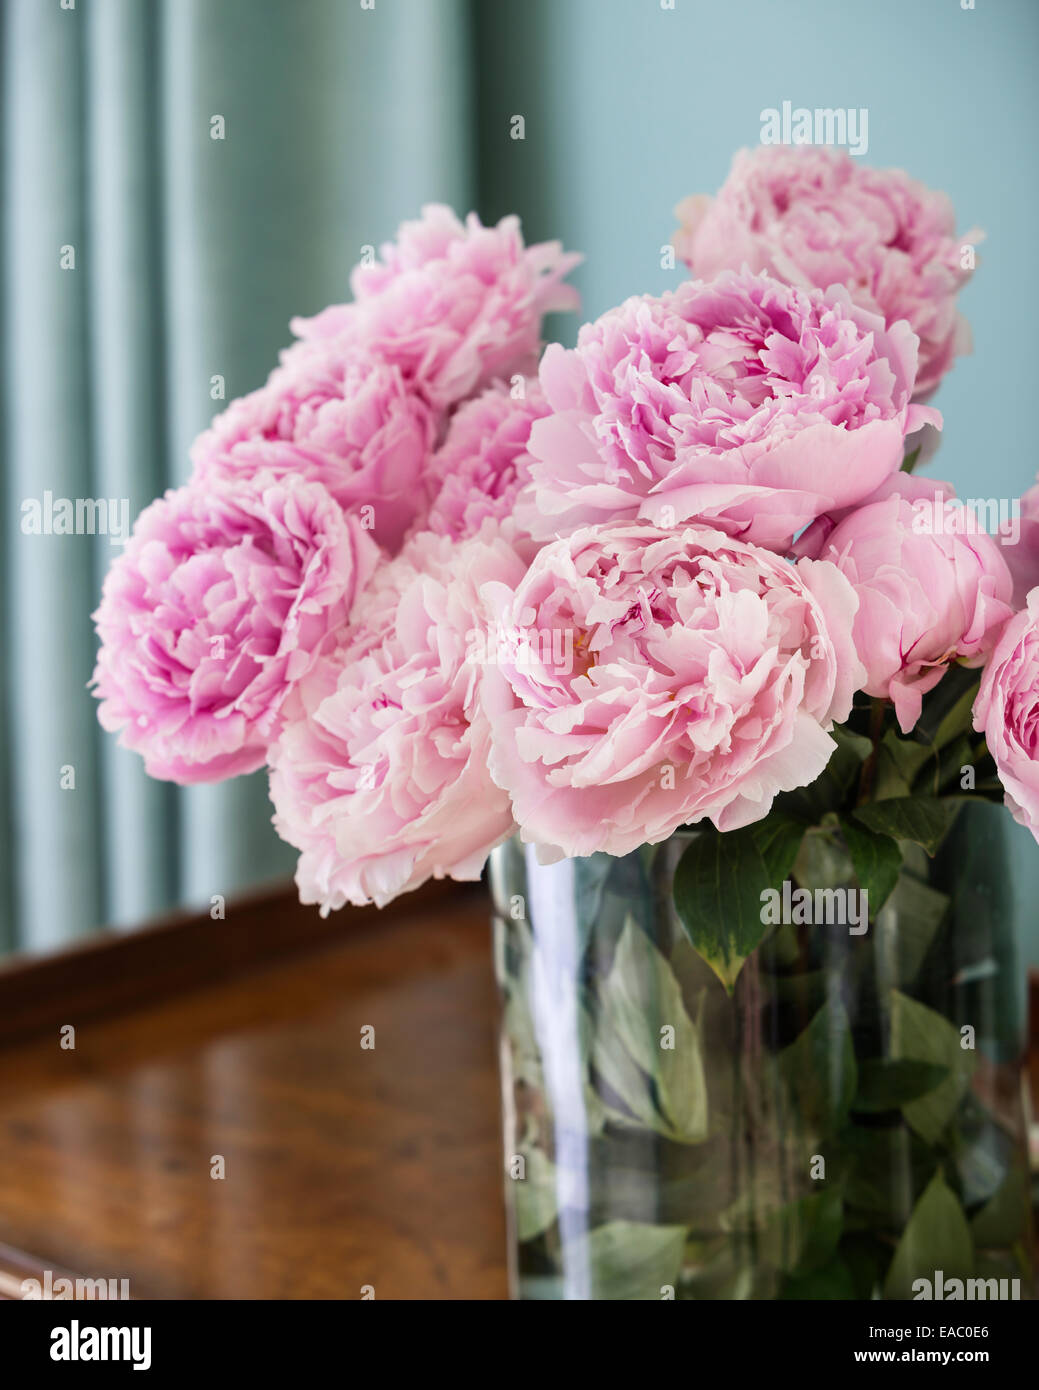 Pink peonies in glass vase - Stock Image